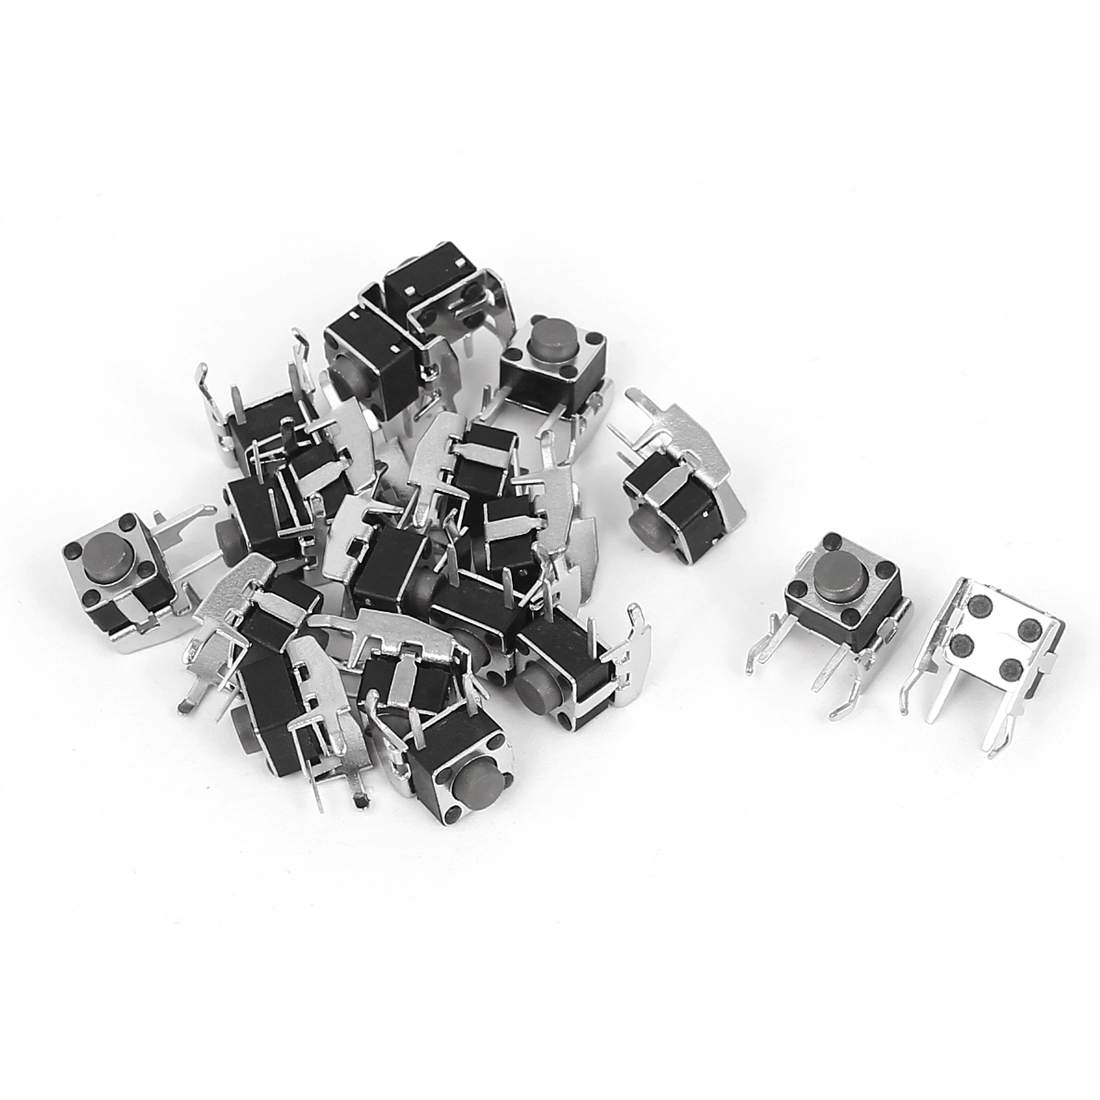 20pcs Momentory Push Button Tact Tactile Switch 2-Terminal 11x9x8mm w Bracket